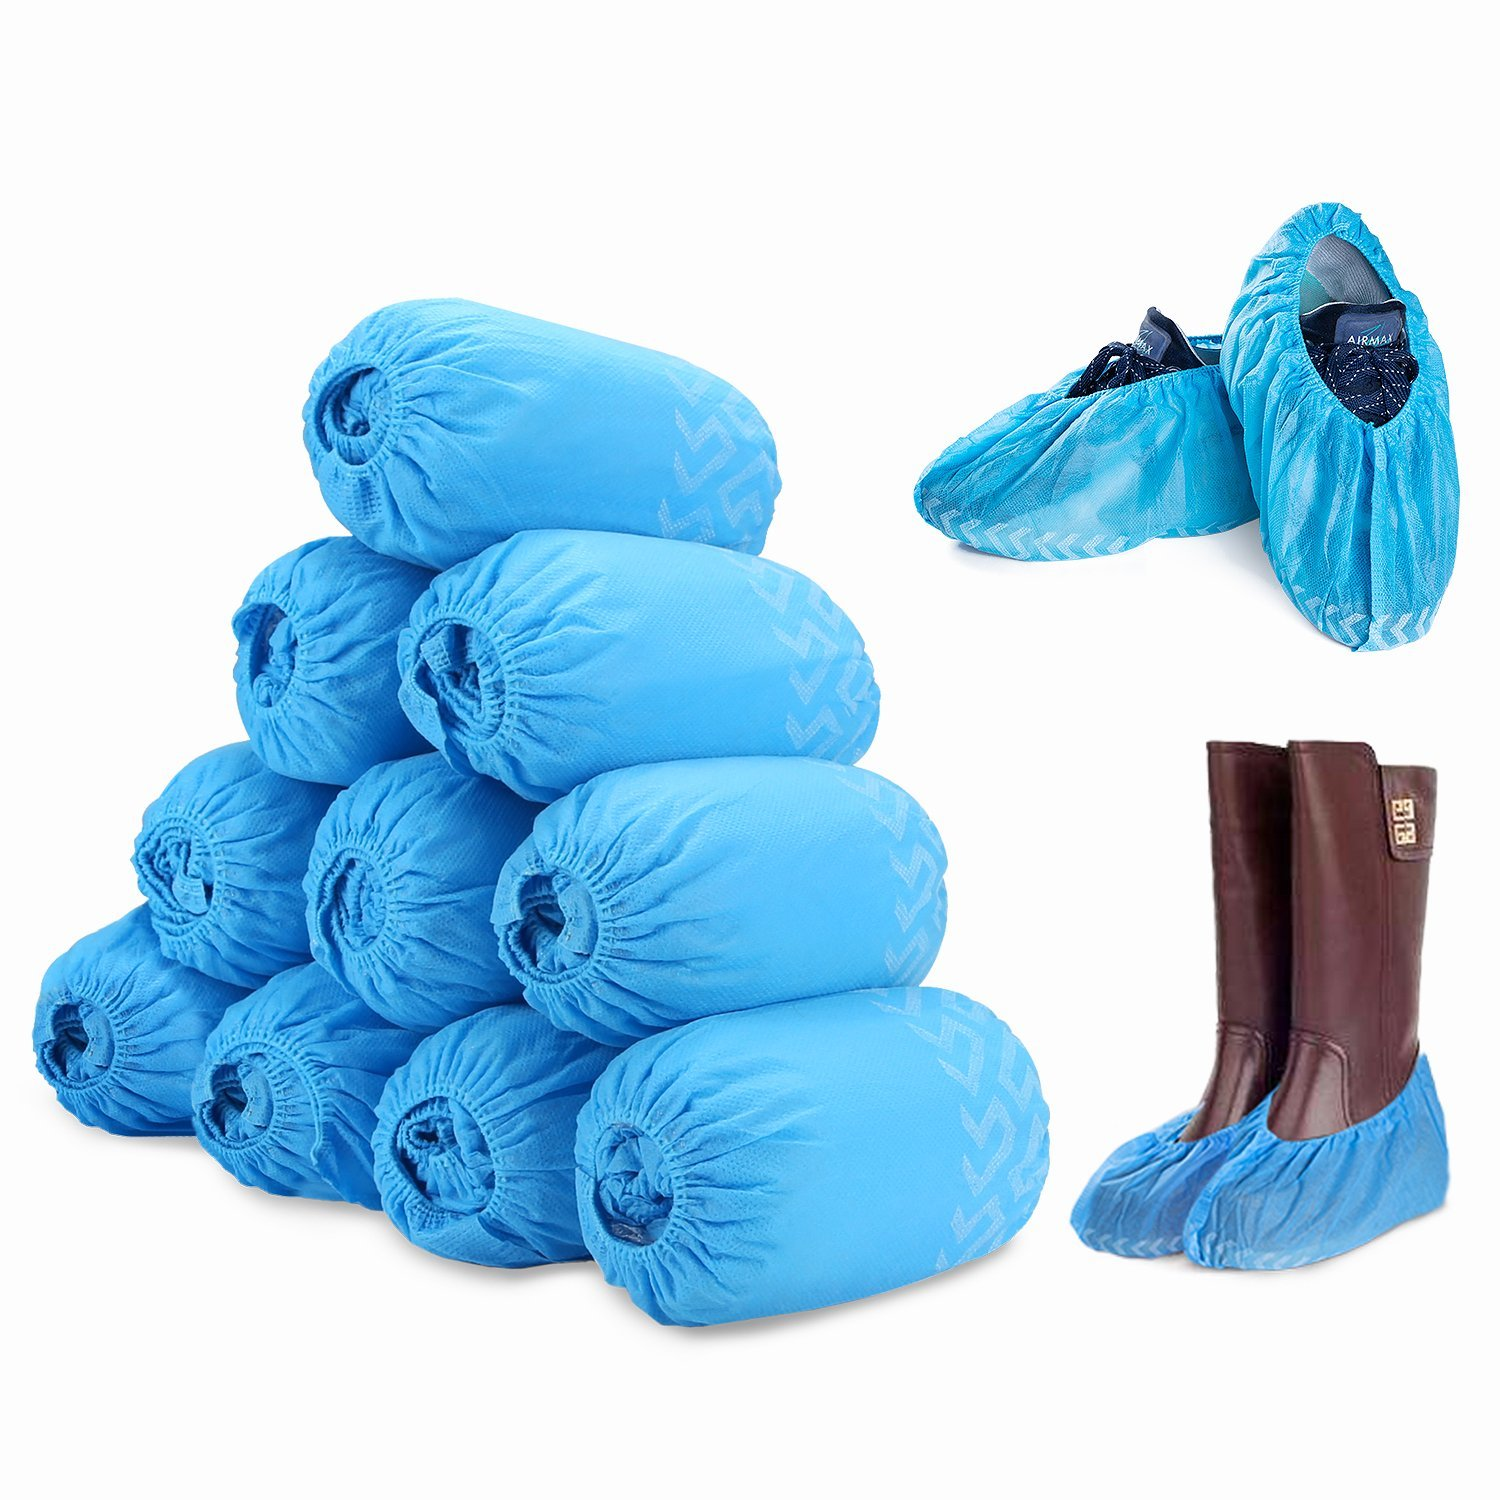 100 Pack Disposable Boot & Shoe Covers, Non-slip with Tread Pattern, Durable & Water Resistant, Perfect for Medical Use, Lab, Factory & Indoor Carpet Floor Protection, Fits Up to Men Size 12